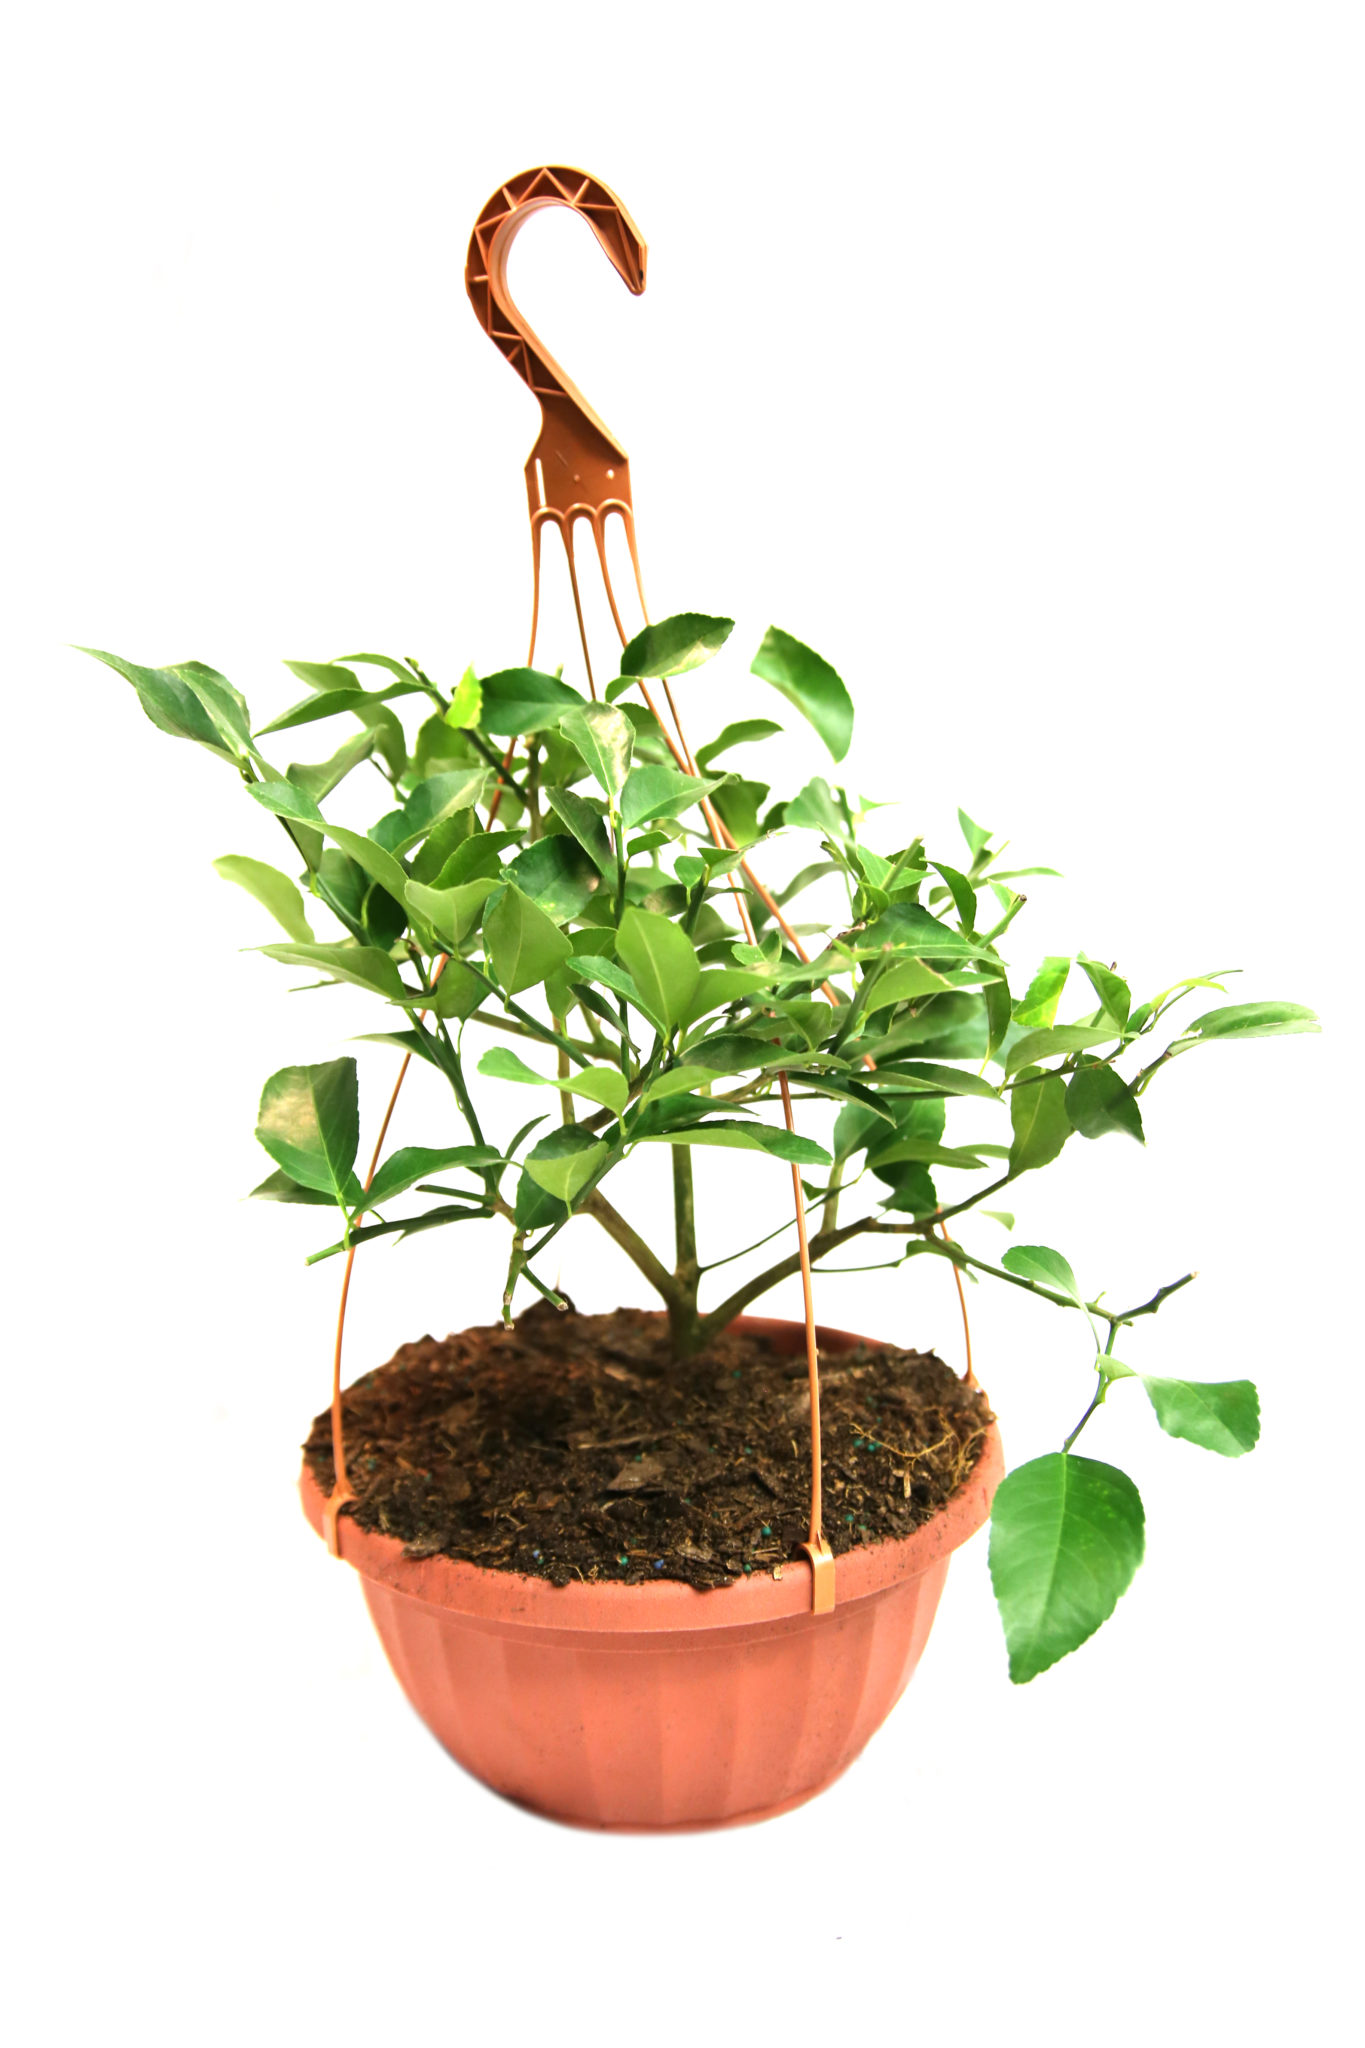 Dwarf Meyer Lemon Tree Hanging Basket (Age: 1 Year, Height: 18 - 26 IN, Size: 3 Gallon)